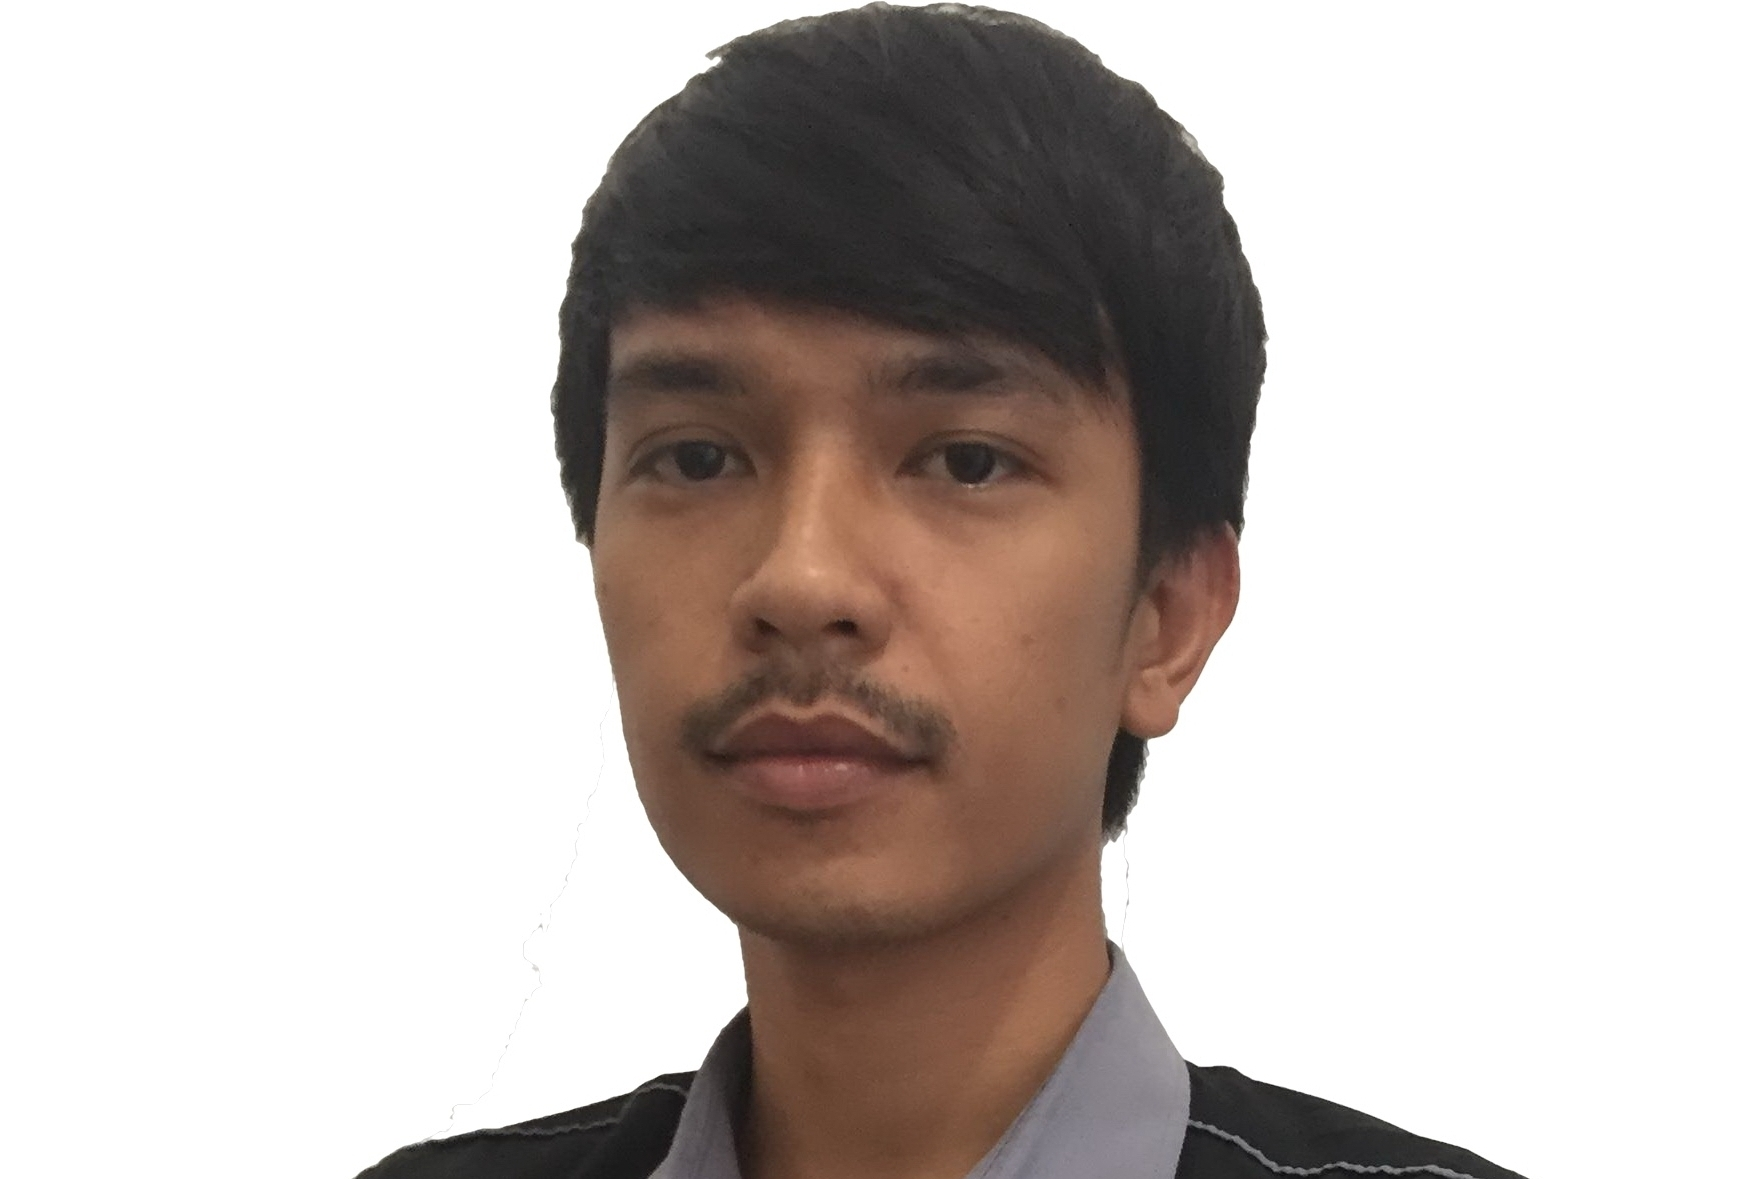 Ruly - Production CoordinatorRuly Fatulloh has been with Satu Bumi for five years in production scheduling and planning, and he is in the process of completing a Business Management degree. Ruli's experience with the business and eye for detail enable the business to closely manage its production and meet order delivery commitments.